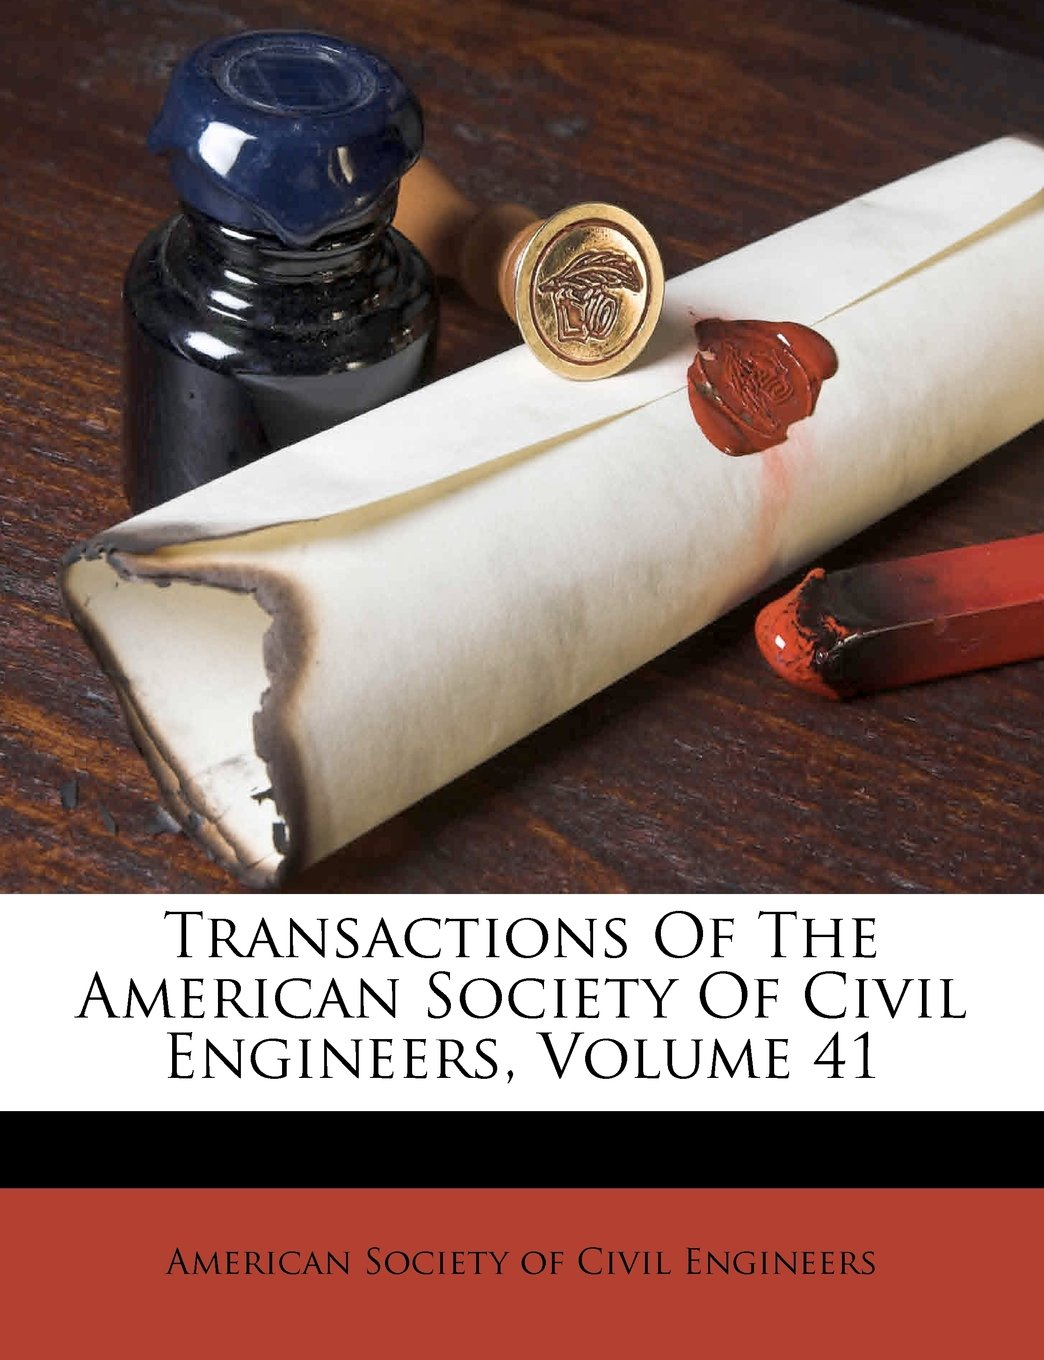 Transactions Of The American Society Of Civil Engineers, Volume 41 ebook